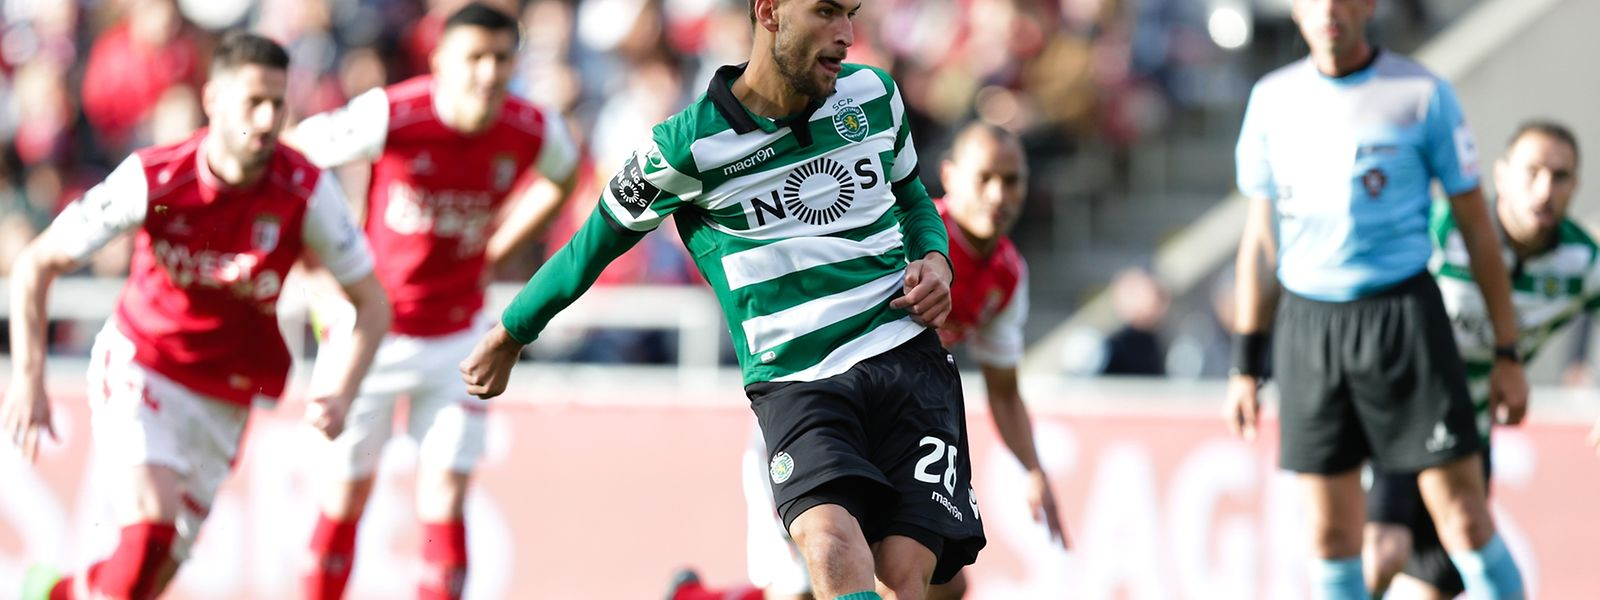 O Sporting venceu hoje no terreno do Sporting de Braga, por 3-2